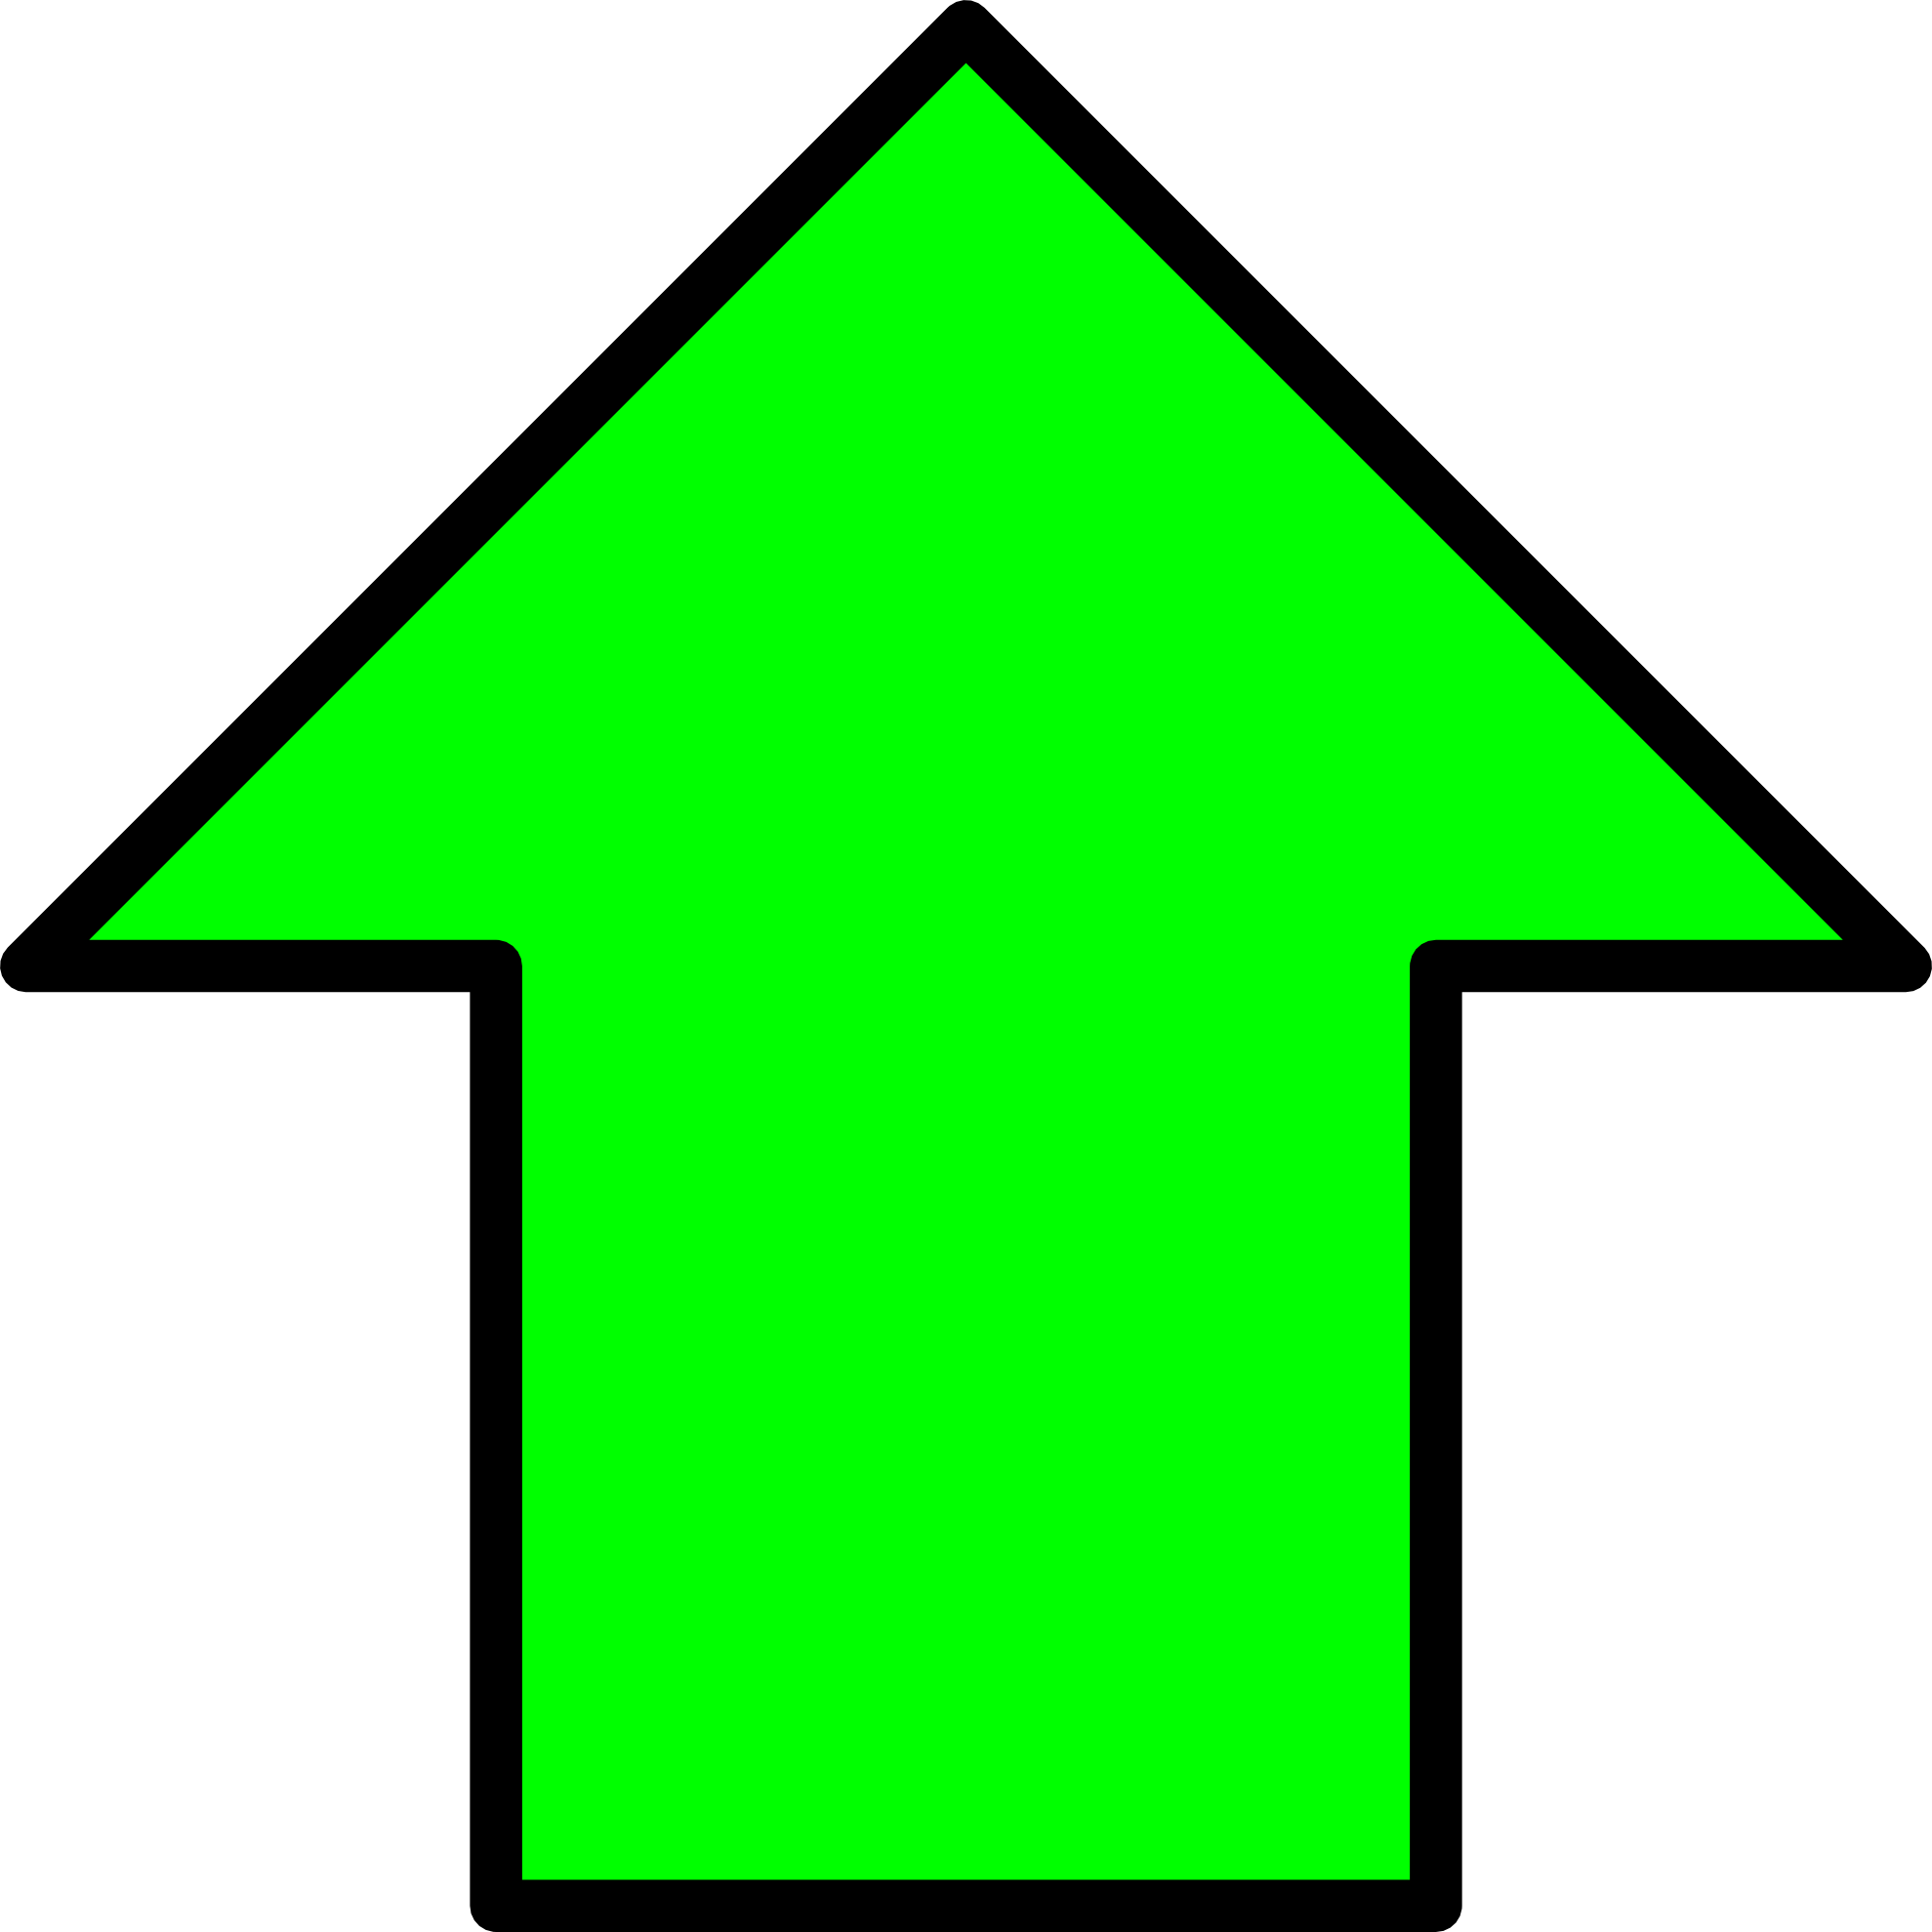 Free Up Arrow Transparent, Download Free Clip Art, Free Clip.